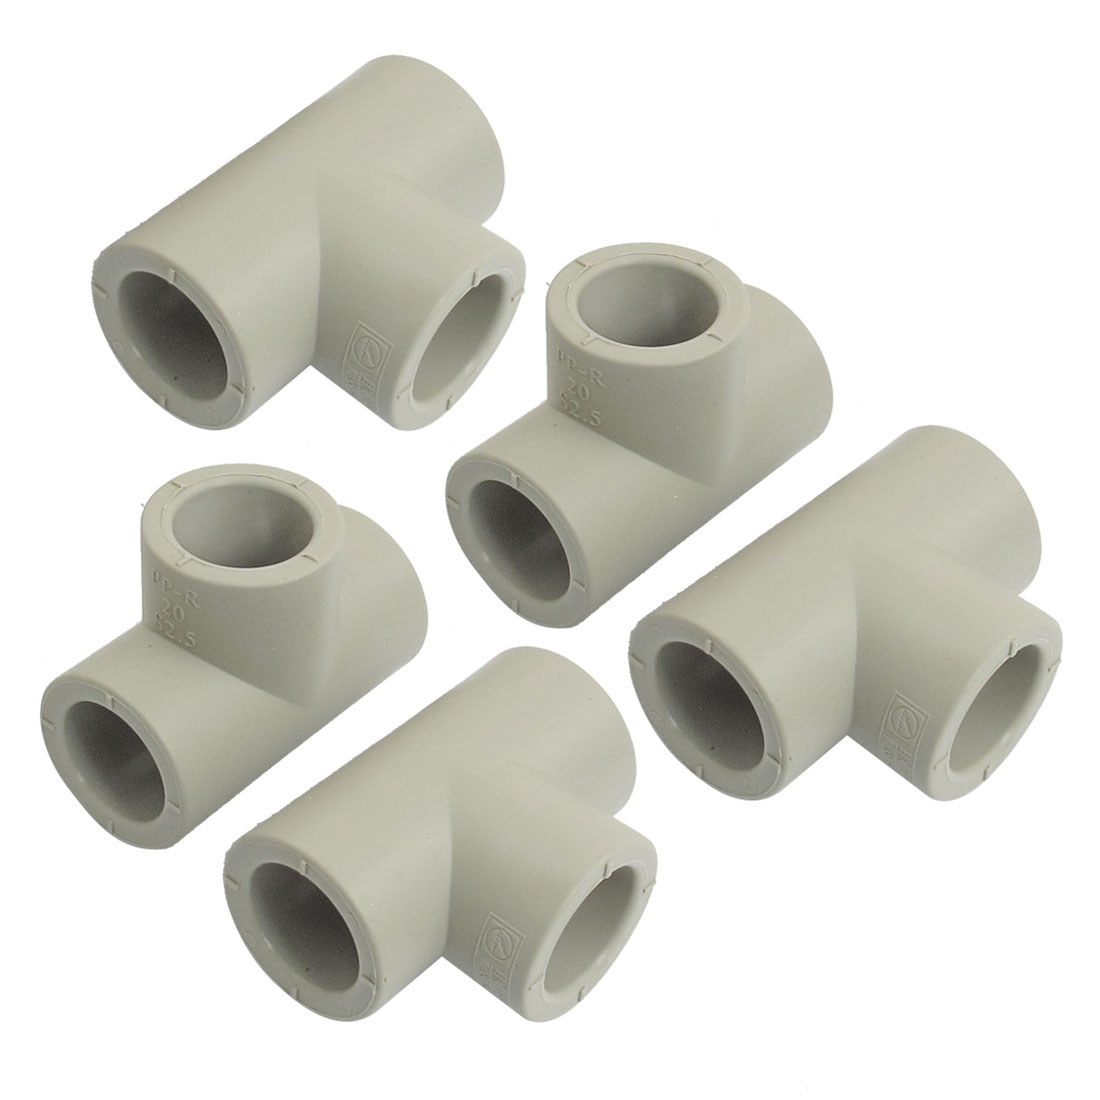 5 Pcs 20mm Inner Dia 3 Ways Tee Shaped PPR Pipe Connectors Fittings